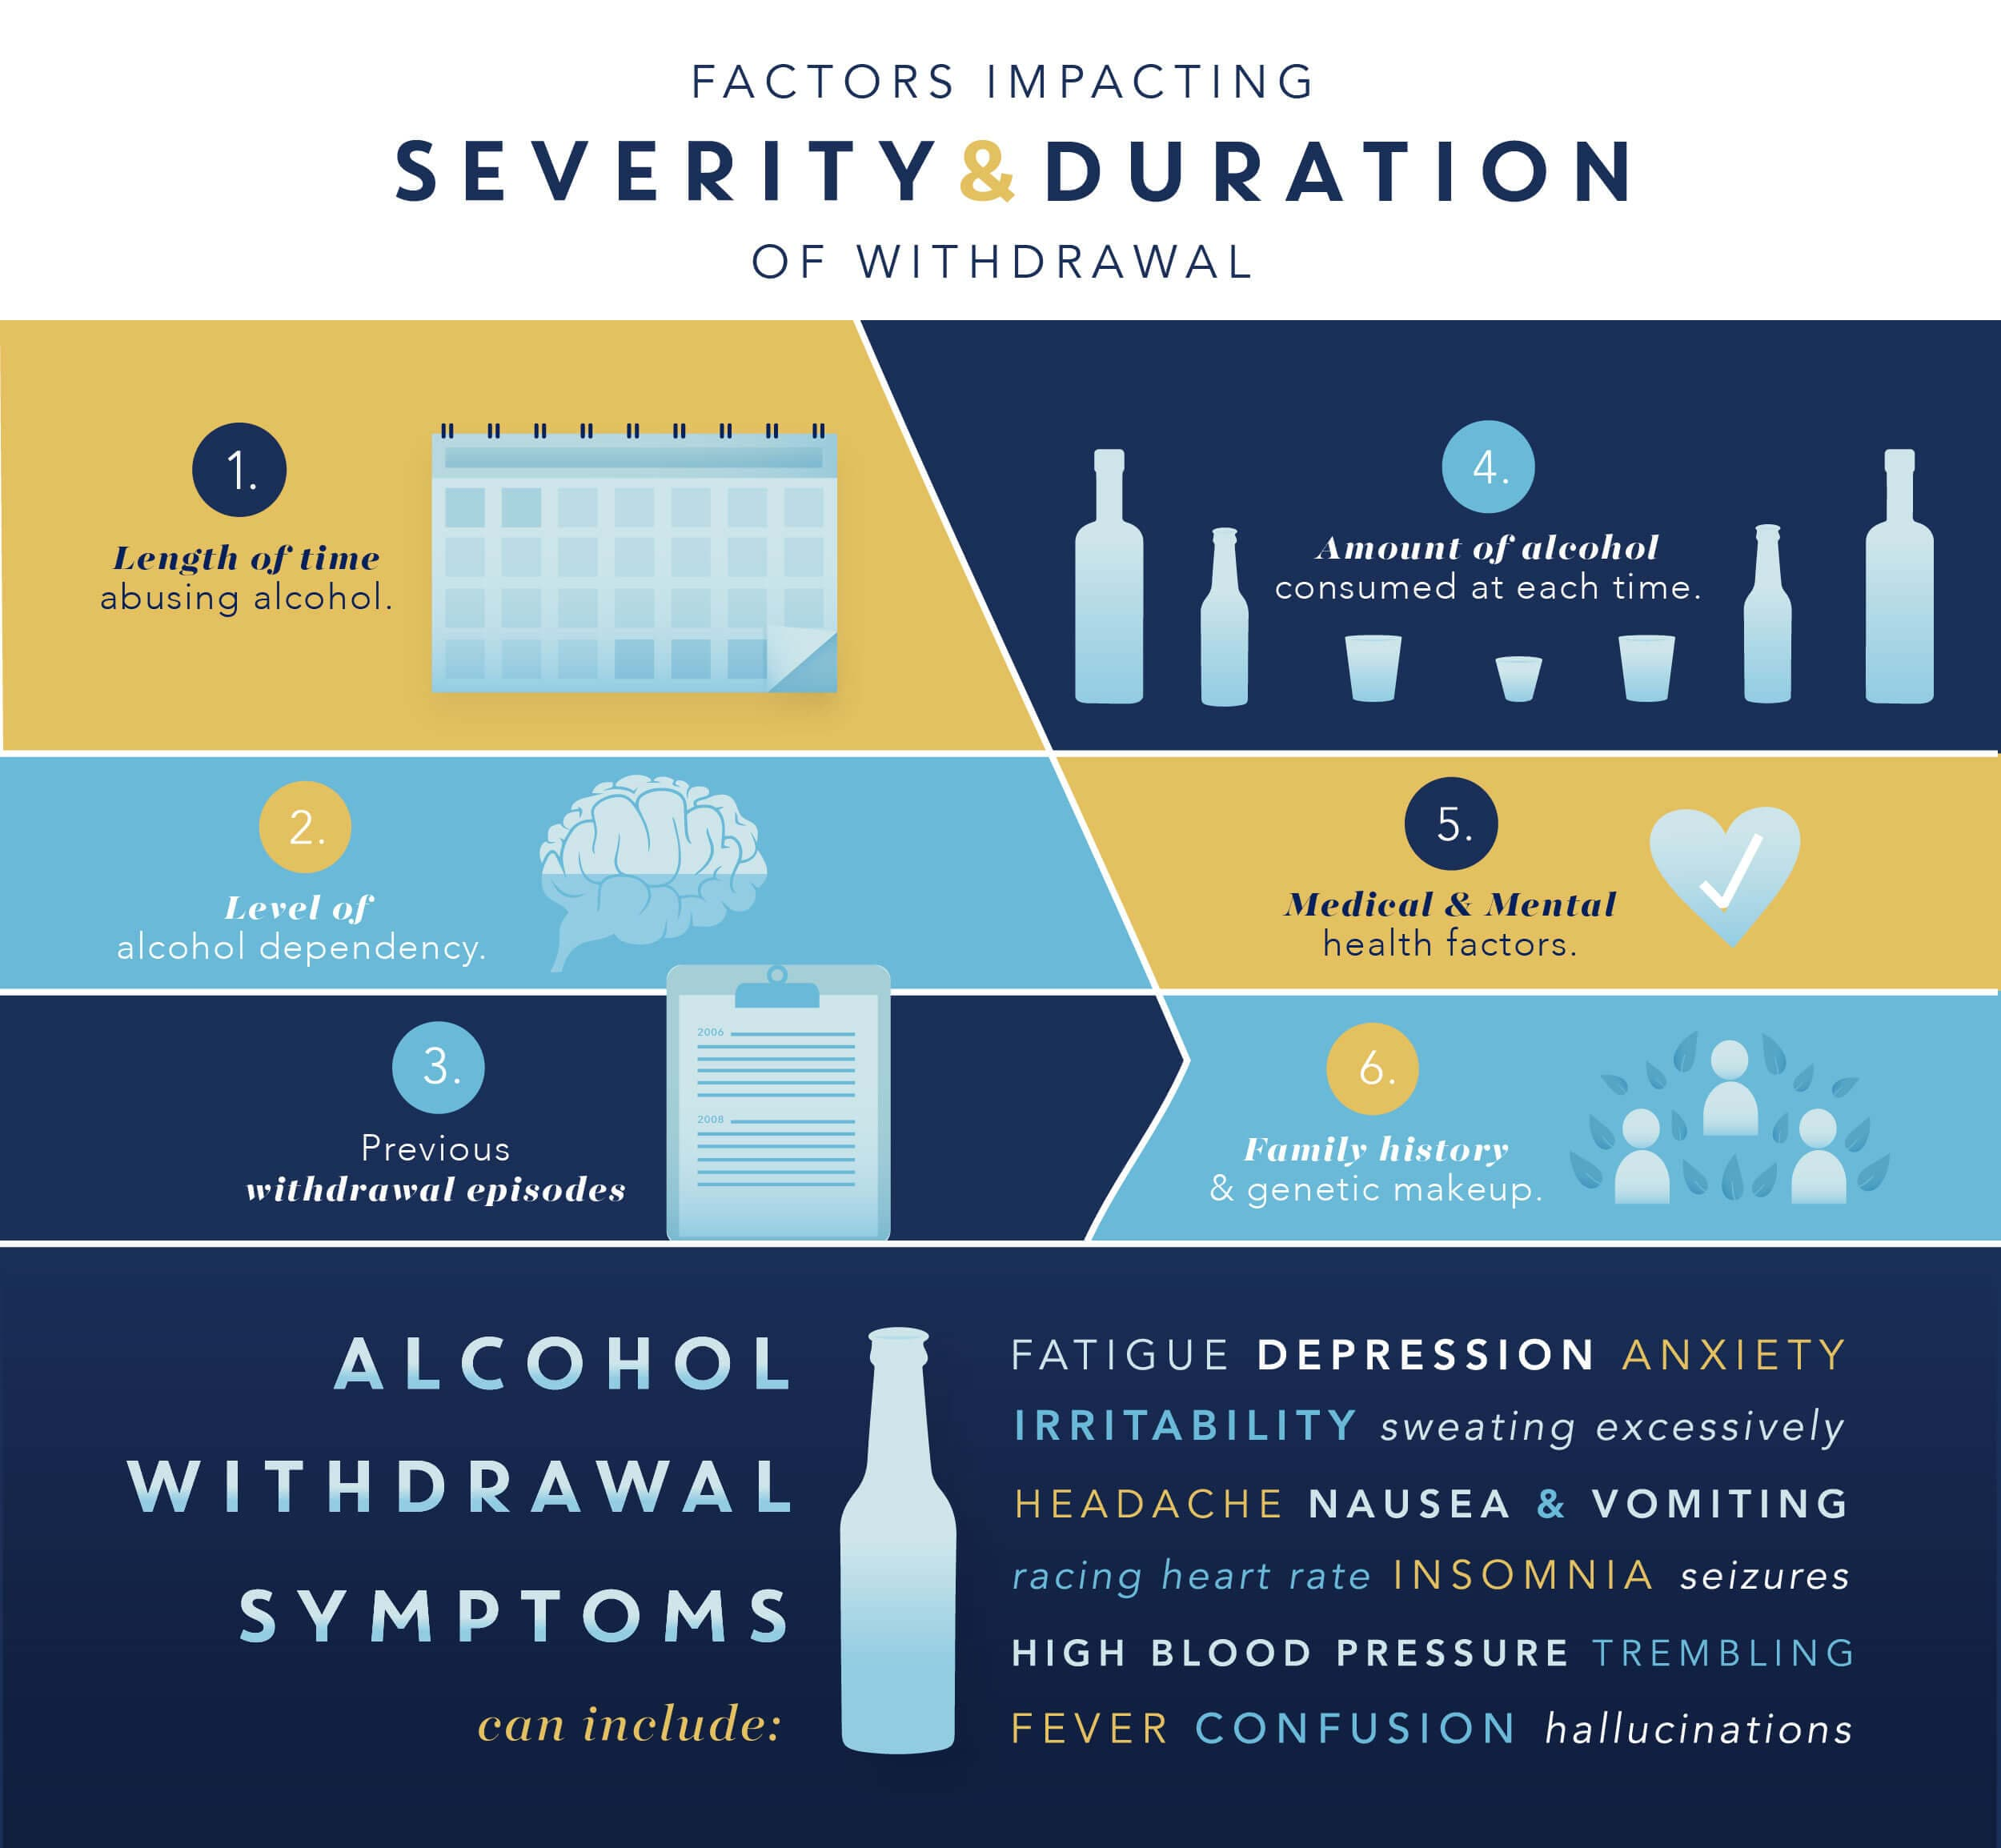 Factors impacting severity and duration of withdrawal. One, Length of time abusing alcohol. Two, level of alcohol dependency. Three, previous withdrawal dependency. Four, amount of alcohol consumed each time. Five, medical and mental health facors. Six, family history and genetic makeup. Alcohol withdrawal symptoms can include fatigue, depression, anxiety, irritability, sweating excessively, headache, nausea and vomiting, racing heart rate, insomnia, seizure, high blood pressure, trembling, fever, confusion, hallucinations.